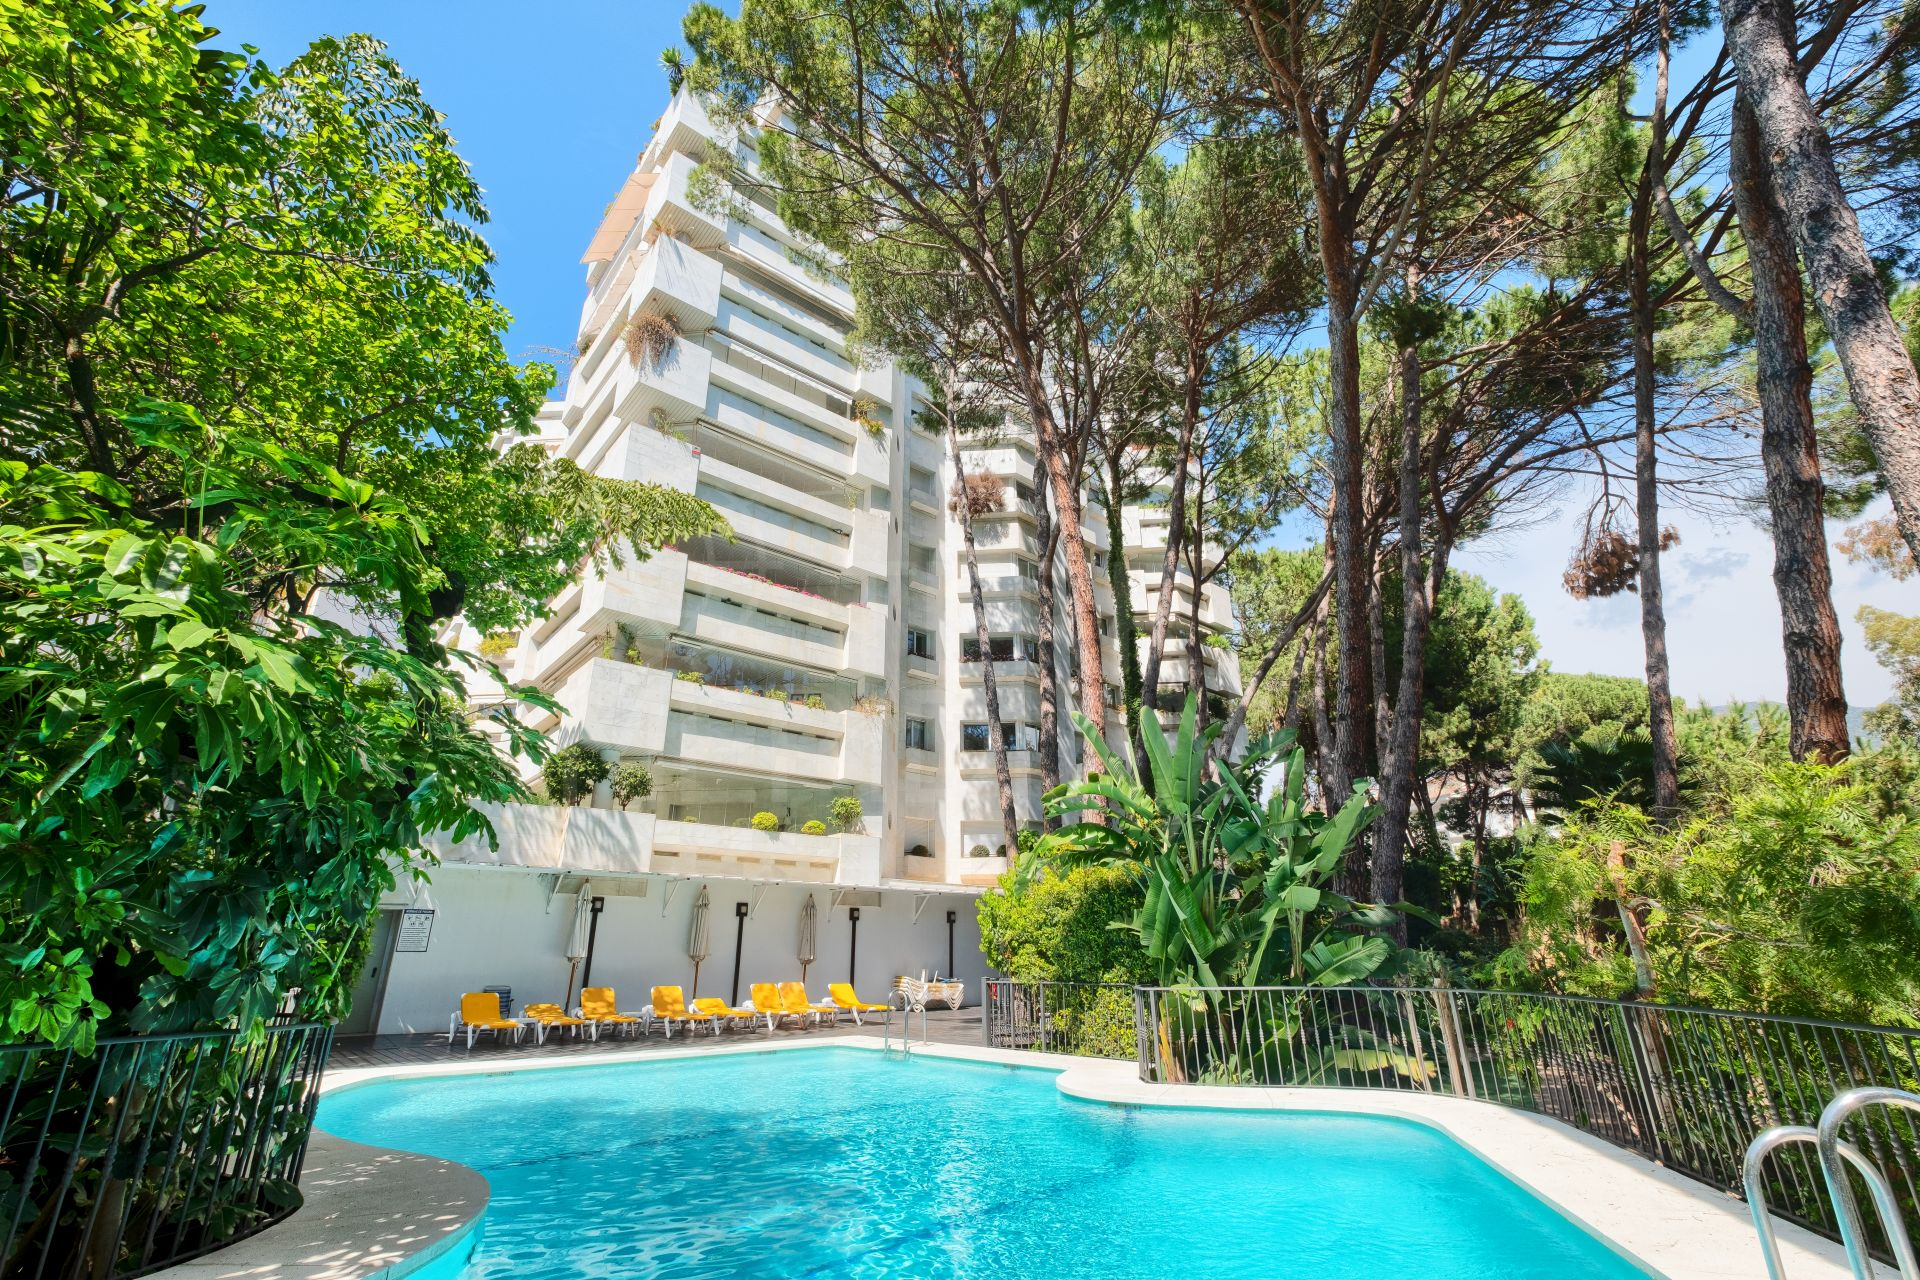 Beachside luxury apartment near the Hotel Gran Melia Don Pepe for sale on the Marbella Golden Mile